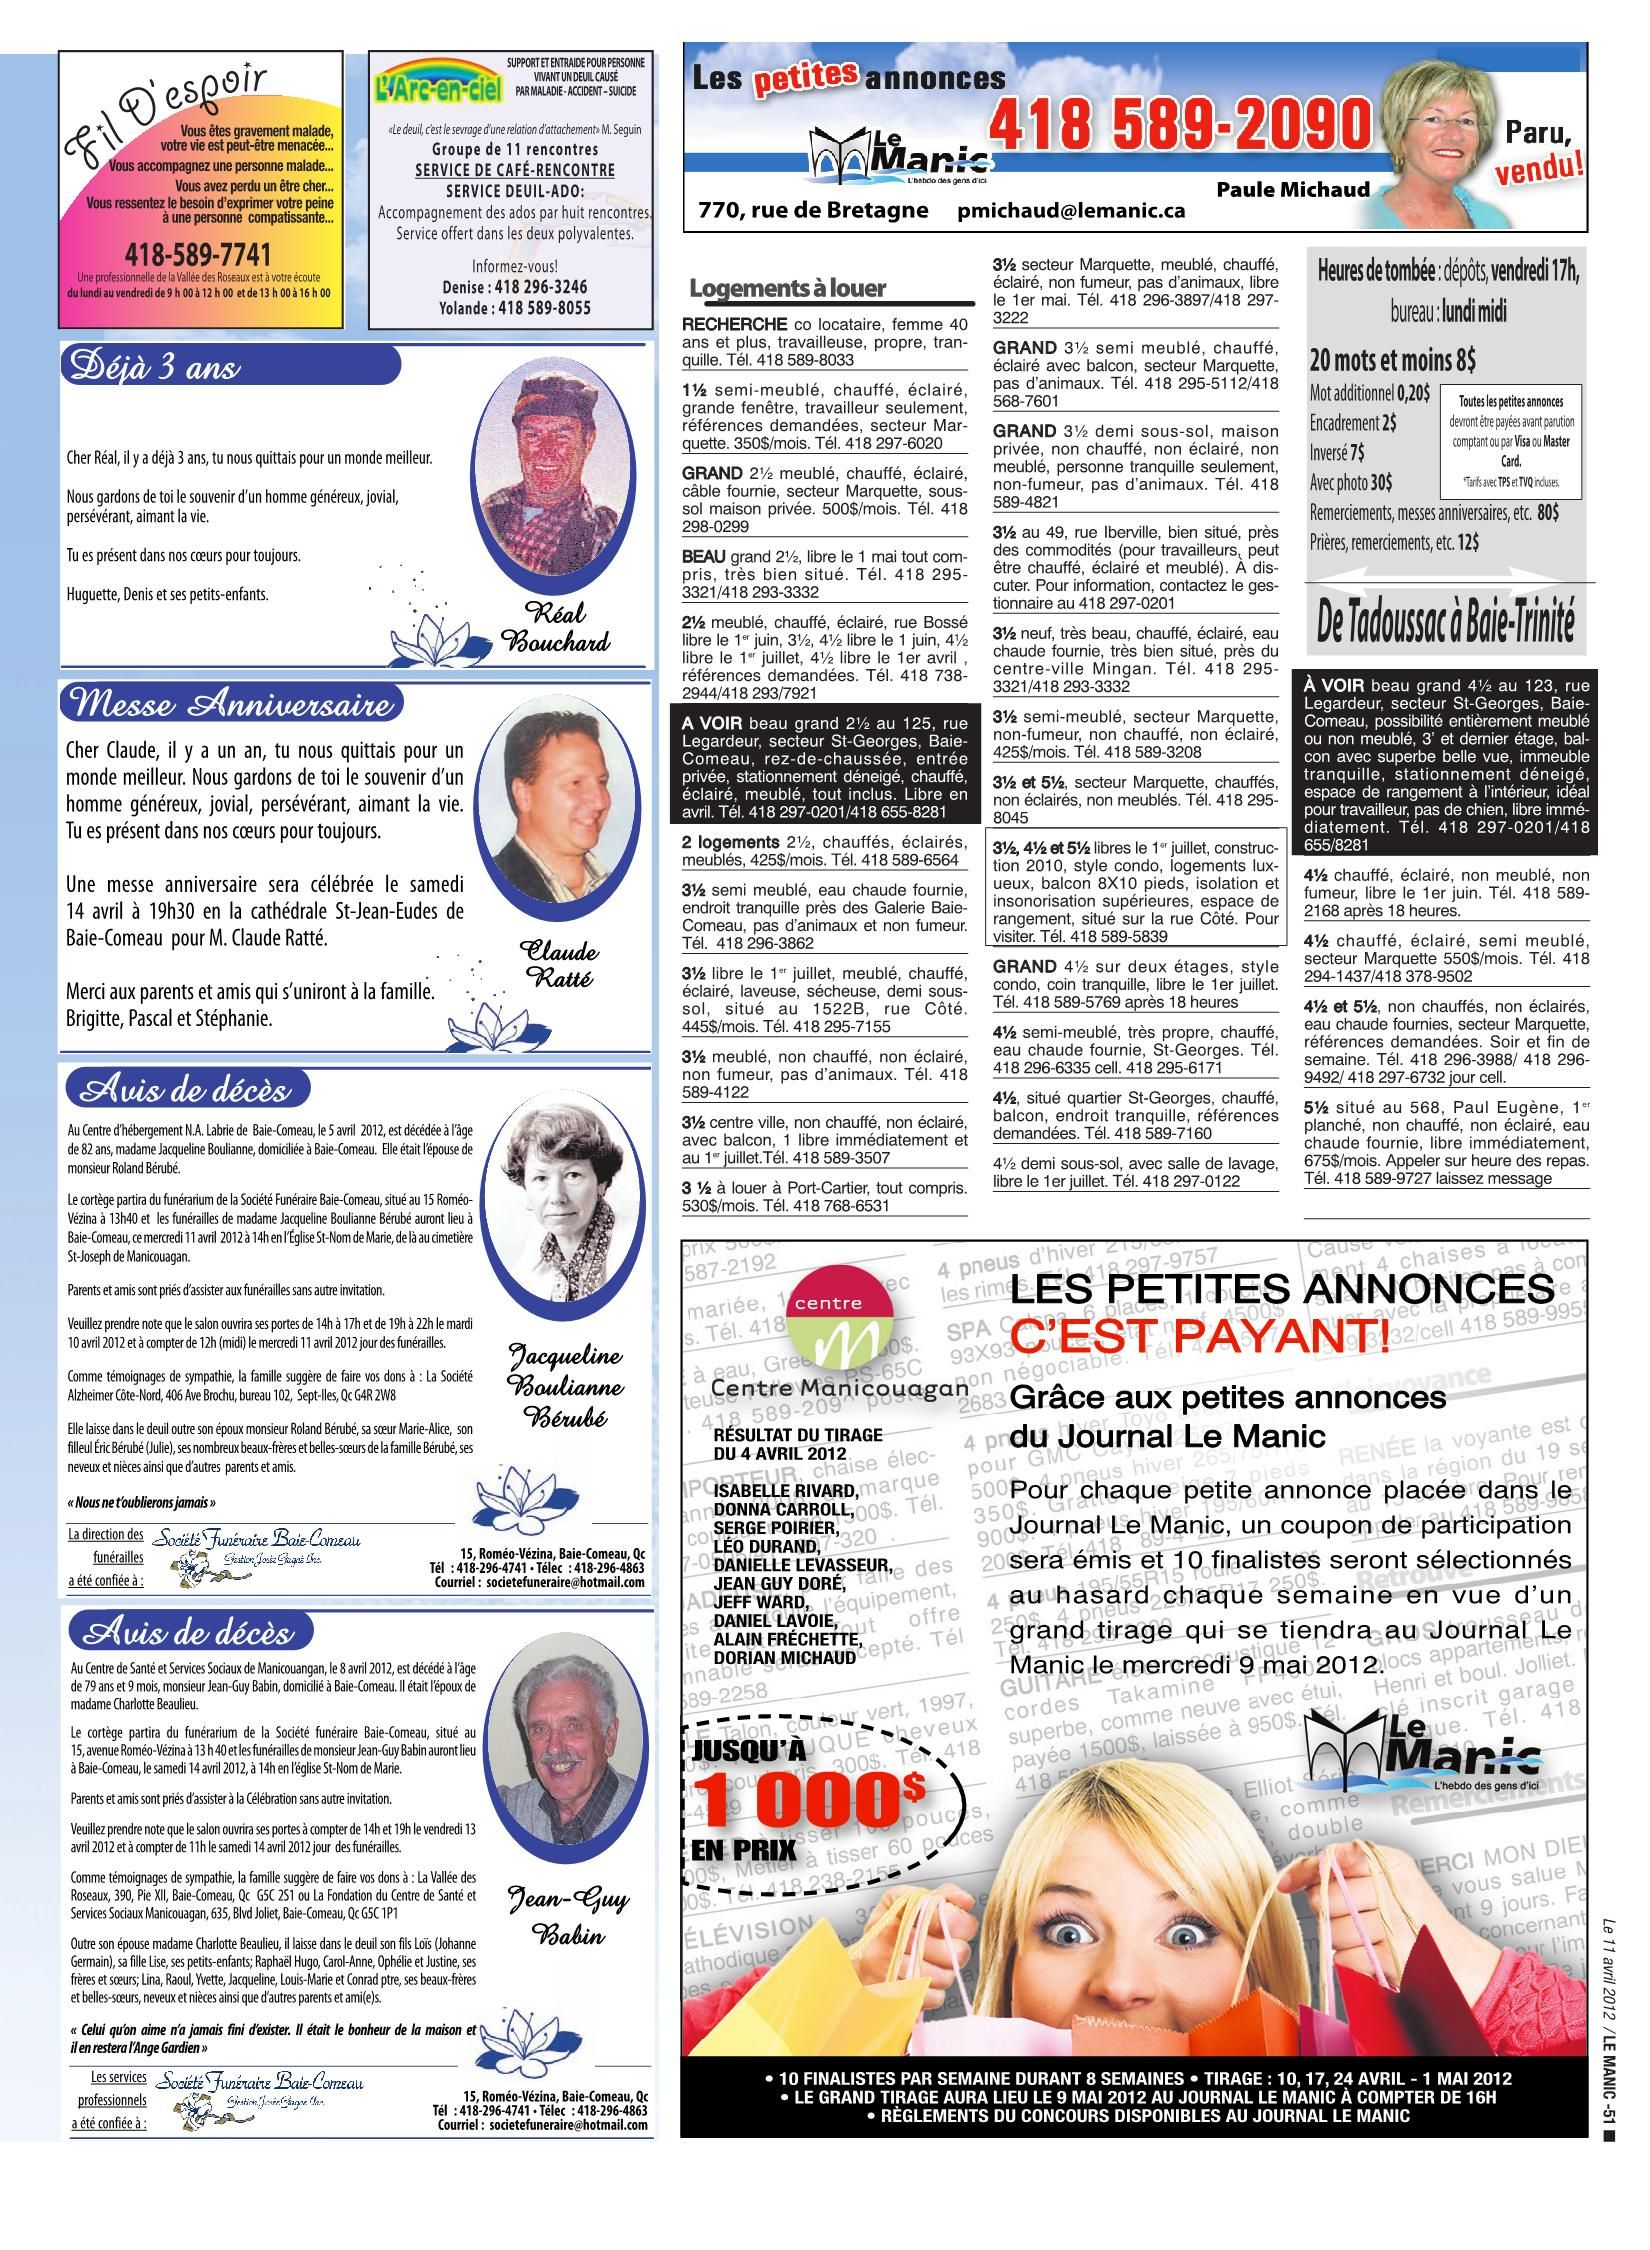 Accent Meubles Levasseur Le Manic 11 Avril 2012 Pages 51 72 Text Version Fliphtml5